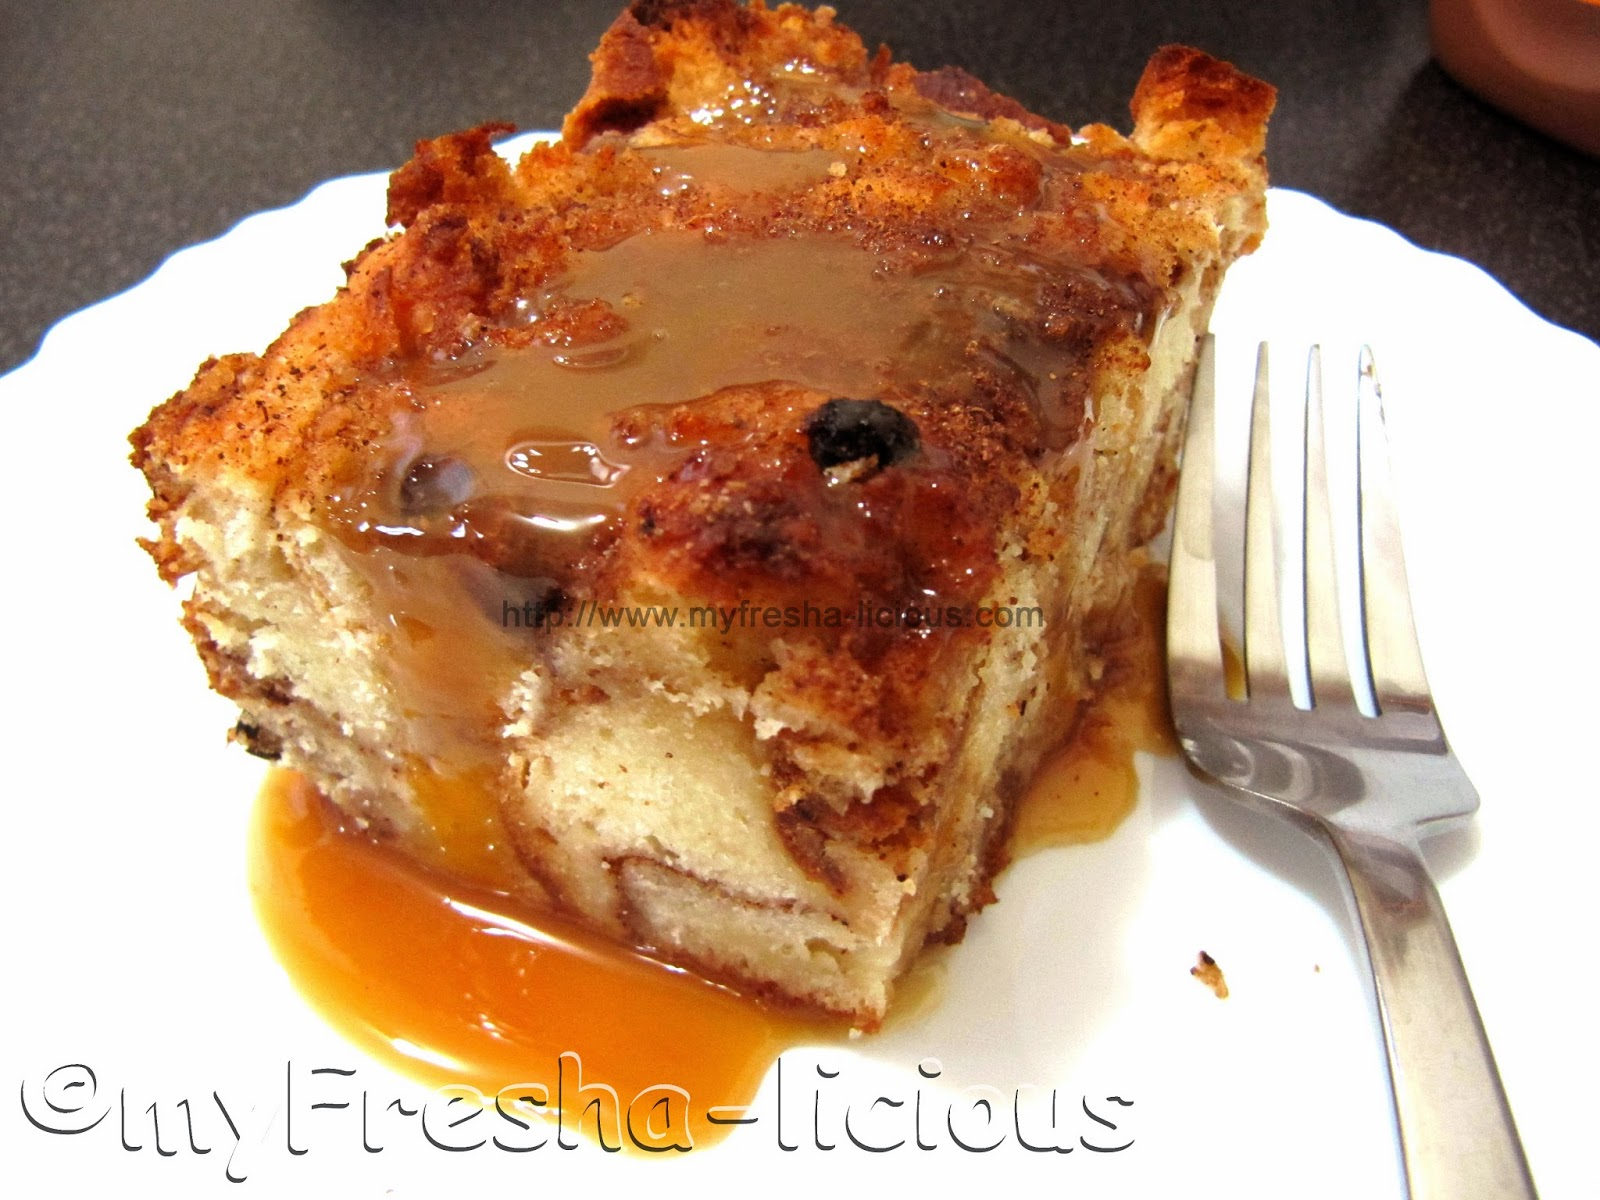 bread pudding cinnamon bread pudding is so good the flavors in this ...